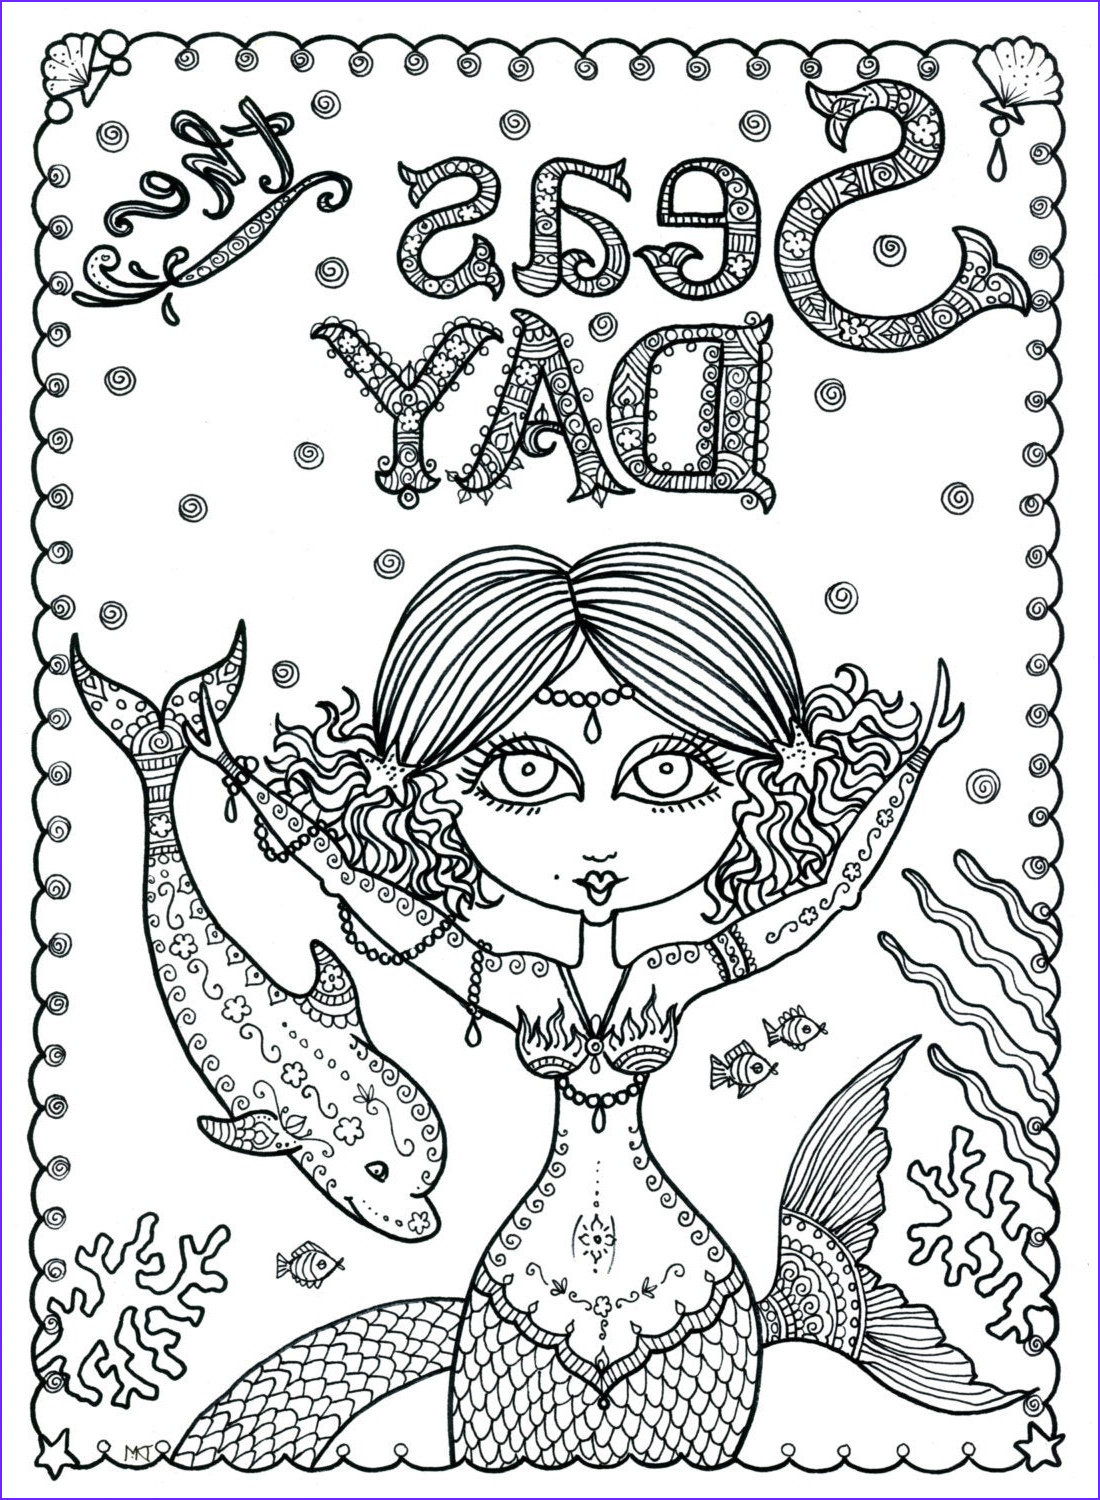 Downloadable Adult Coloring Books Unique Images Seas the Day Instant Download Coloring Page Book Art Adult